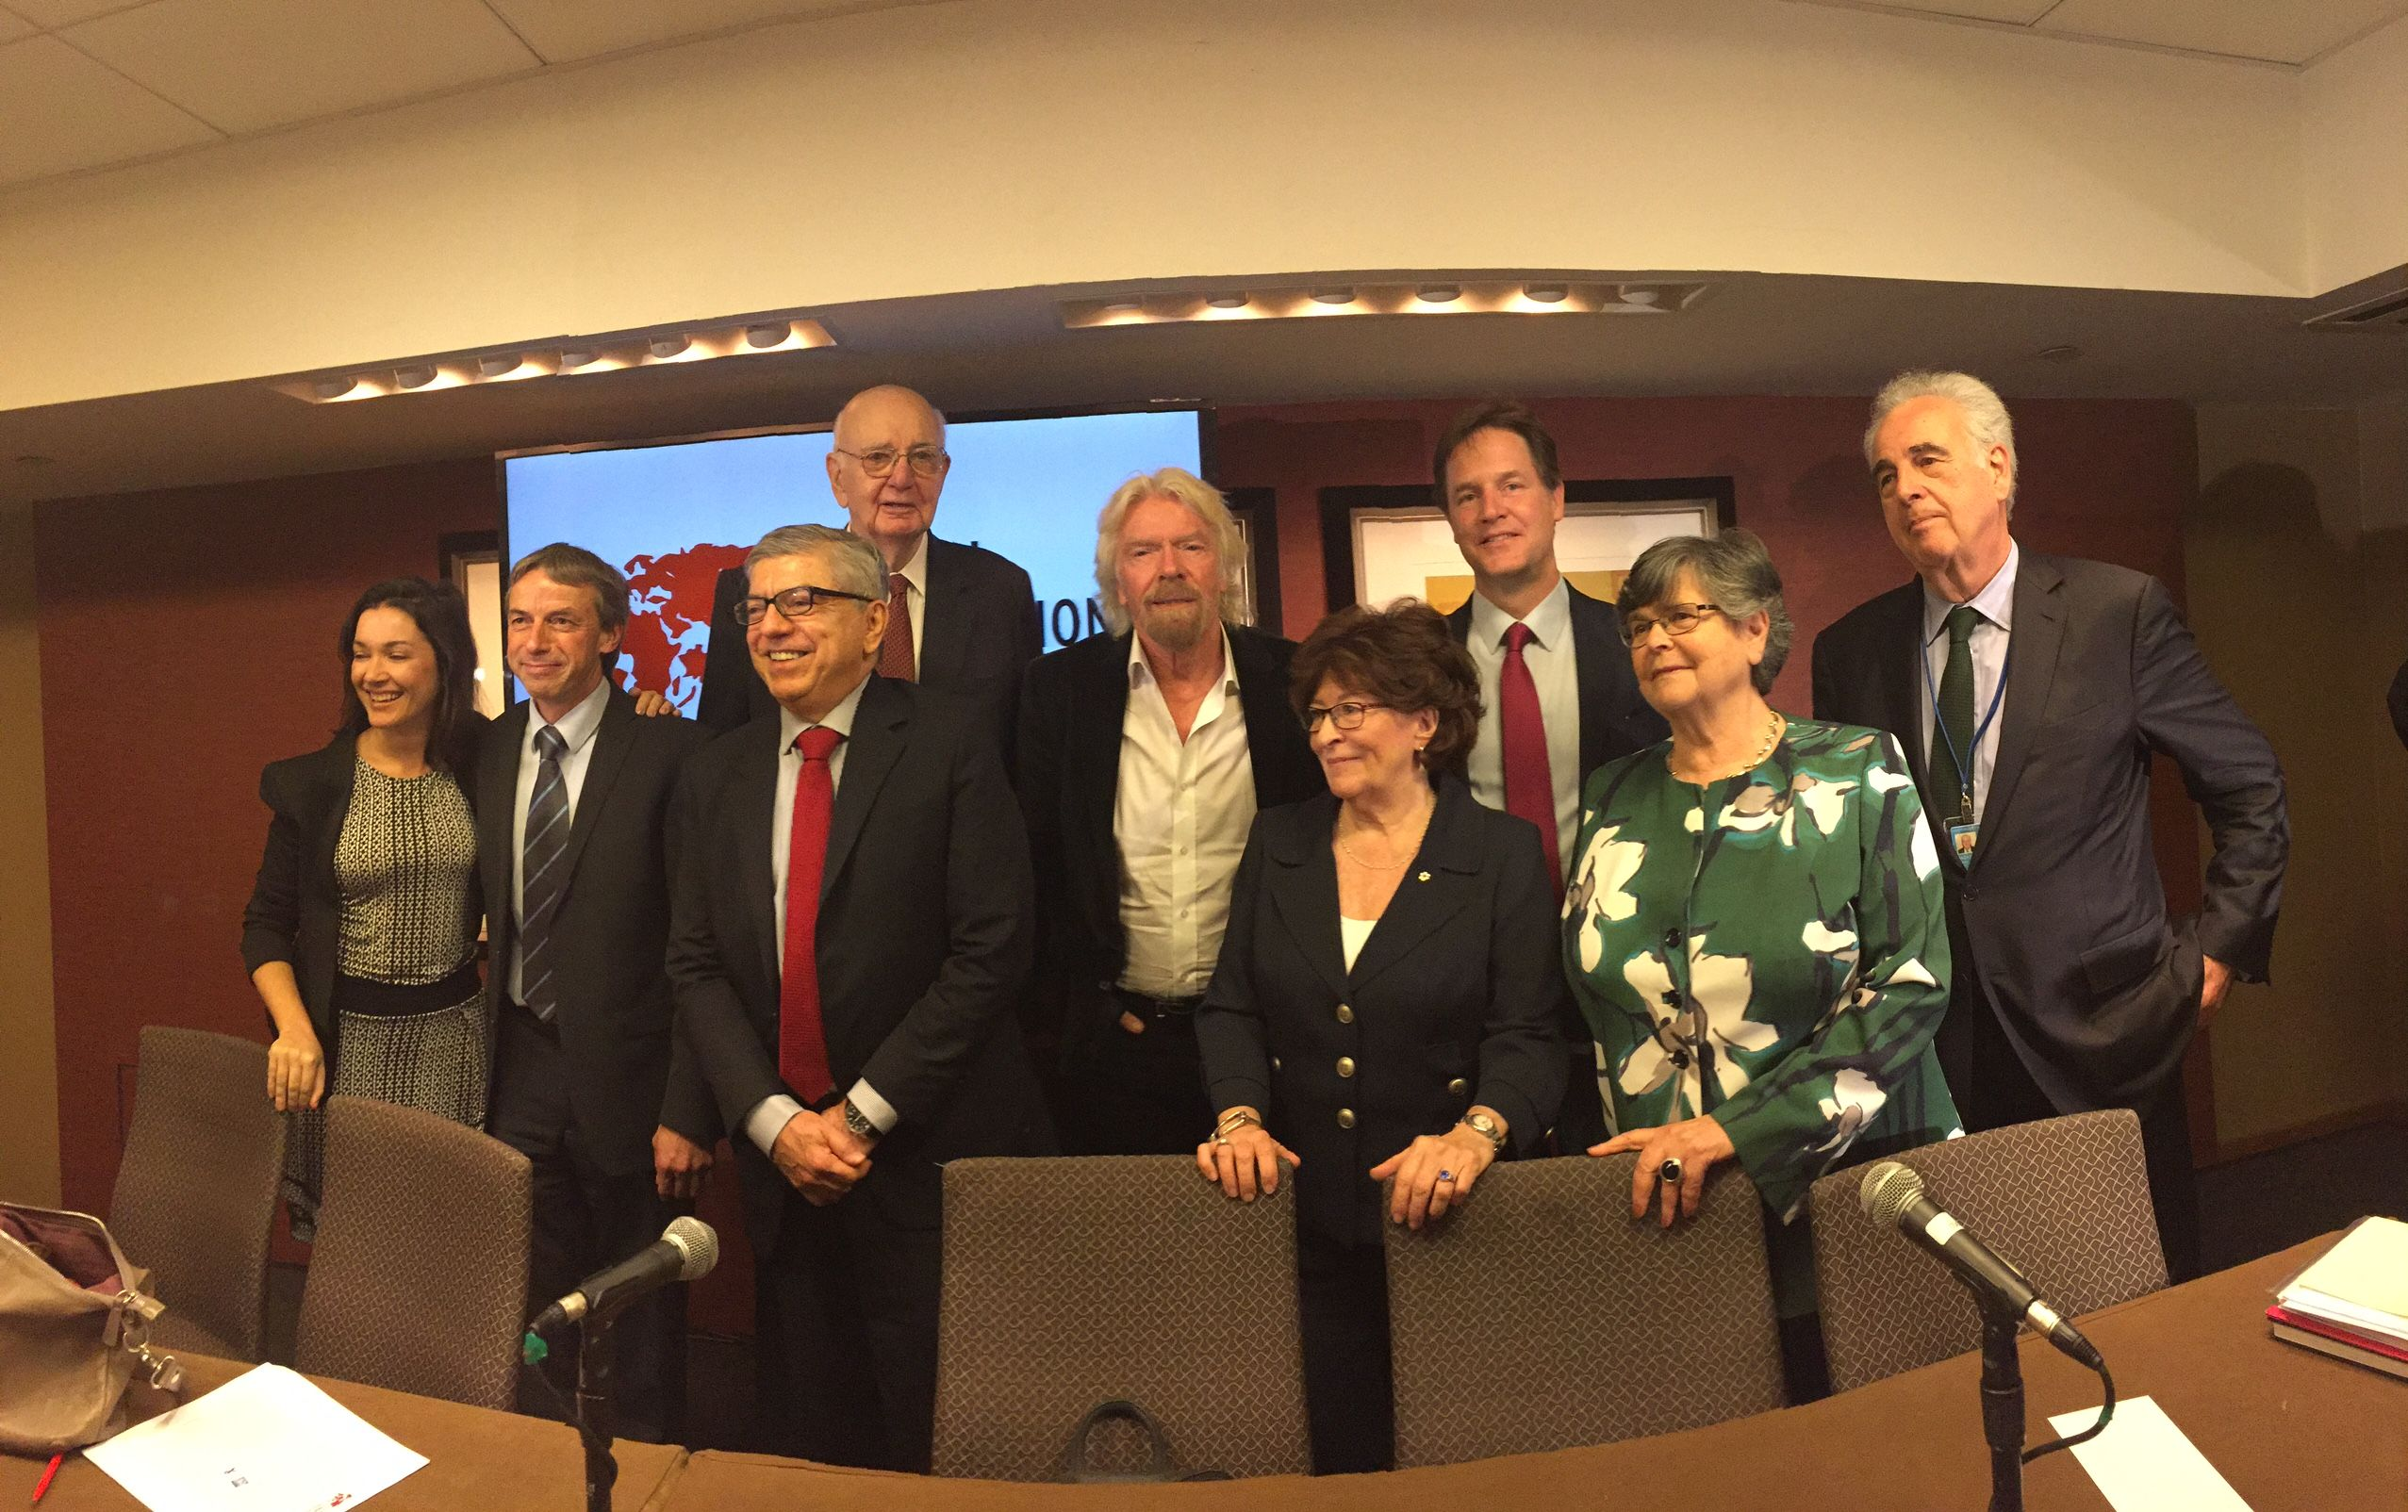 Richard Branson and the Global Commission on Drug Policy, New York UNGASS 2016